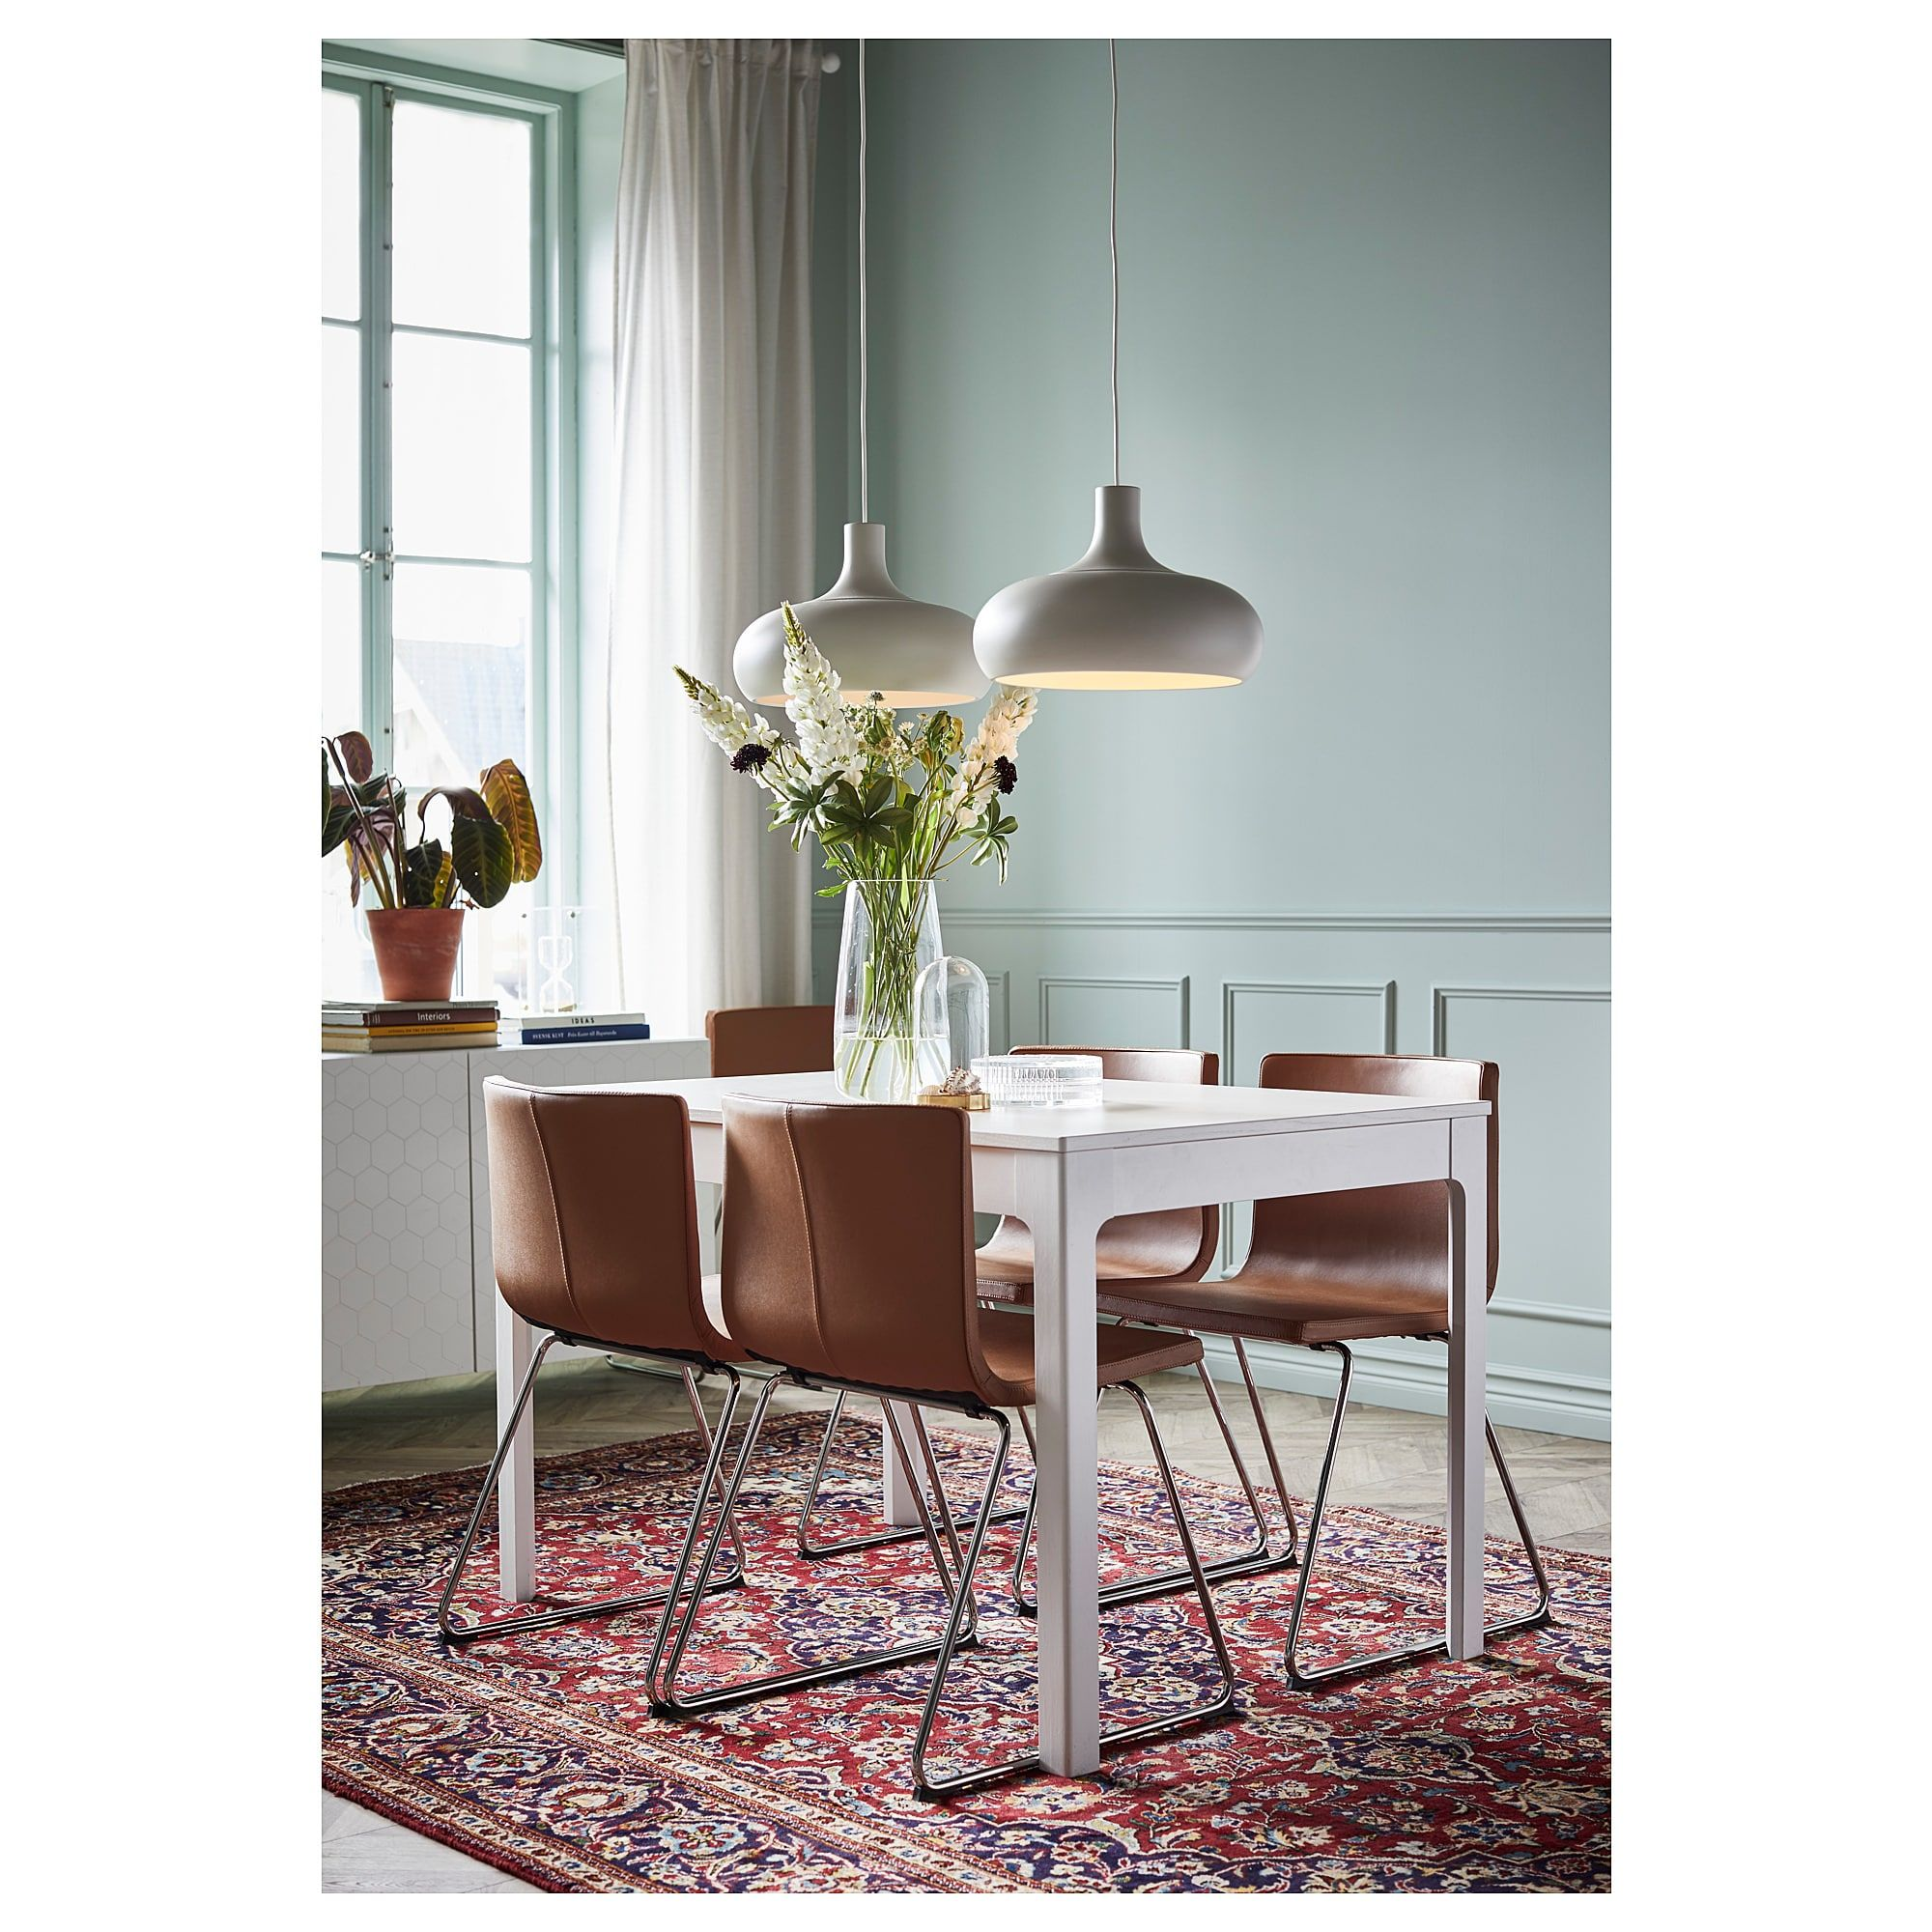 Ekedalen Bernhard Table And 4 Chairs White Mjuk Golden Brown